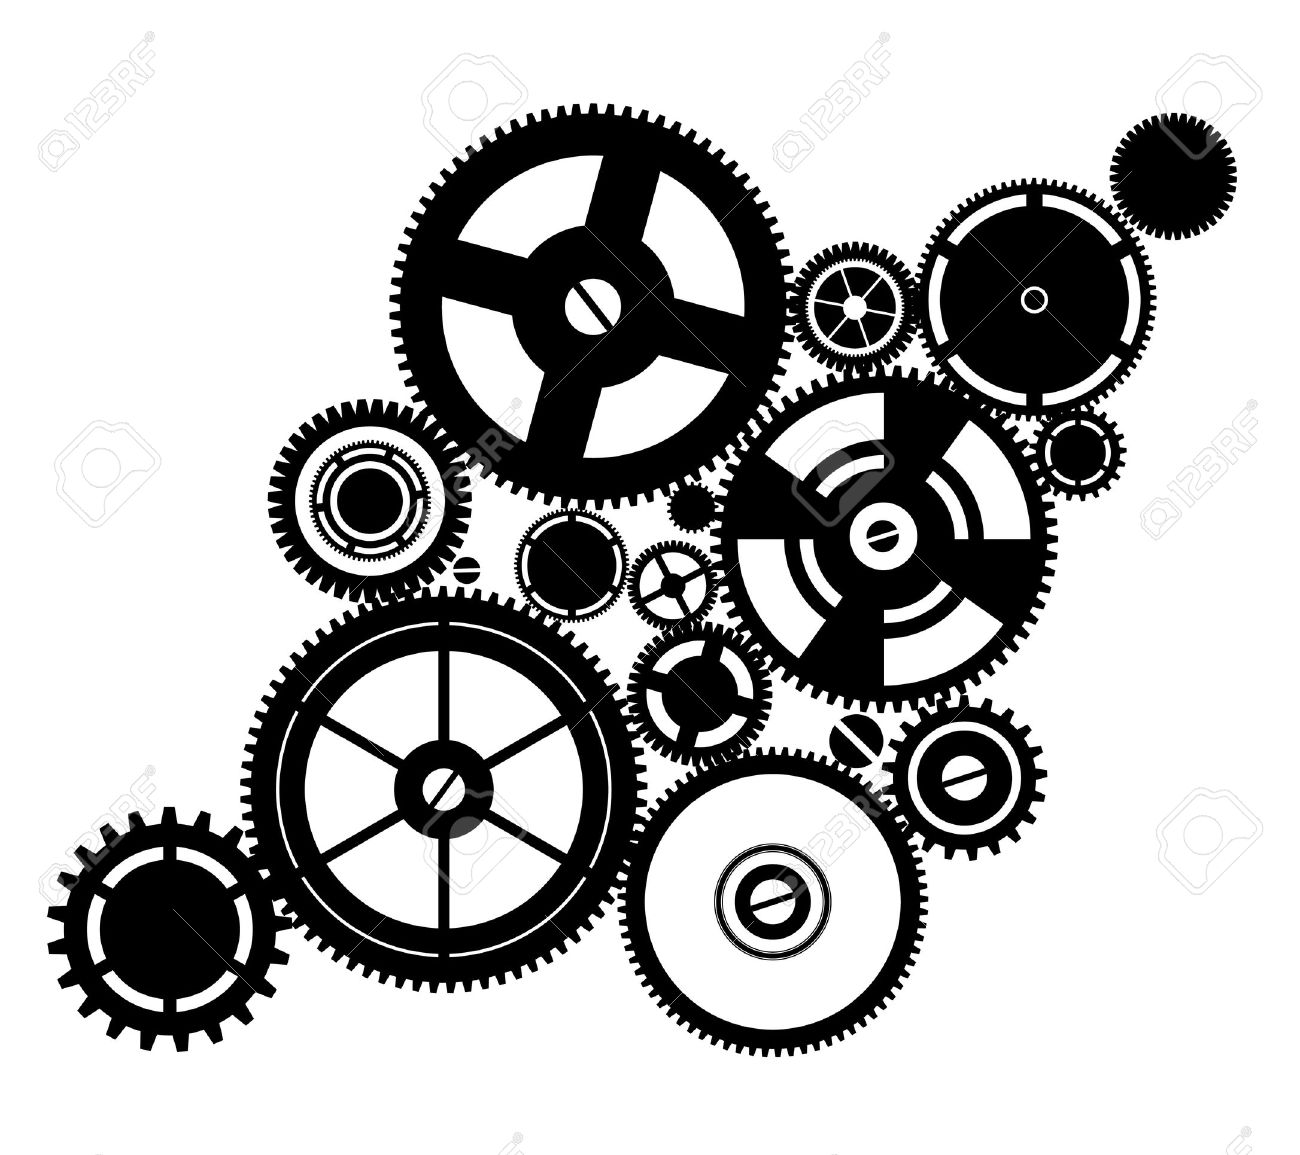 Silhouette Clockwork Royalty Free Cliparts, Vectors, And Stock.